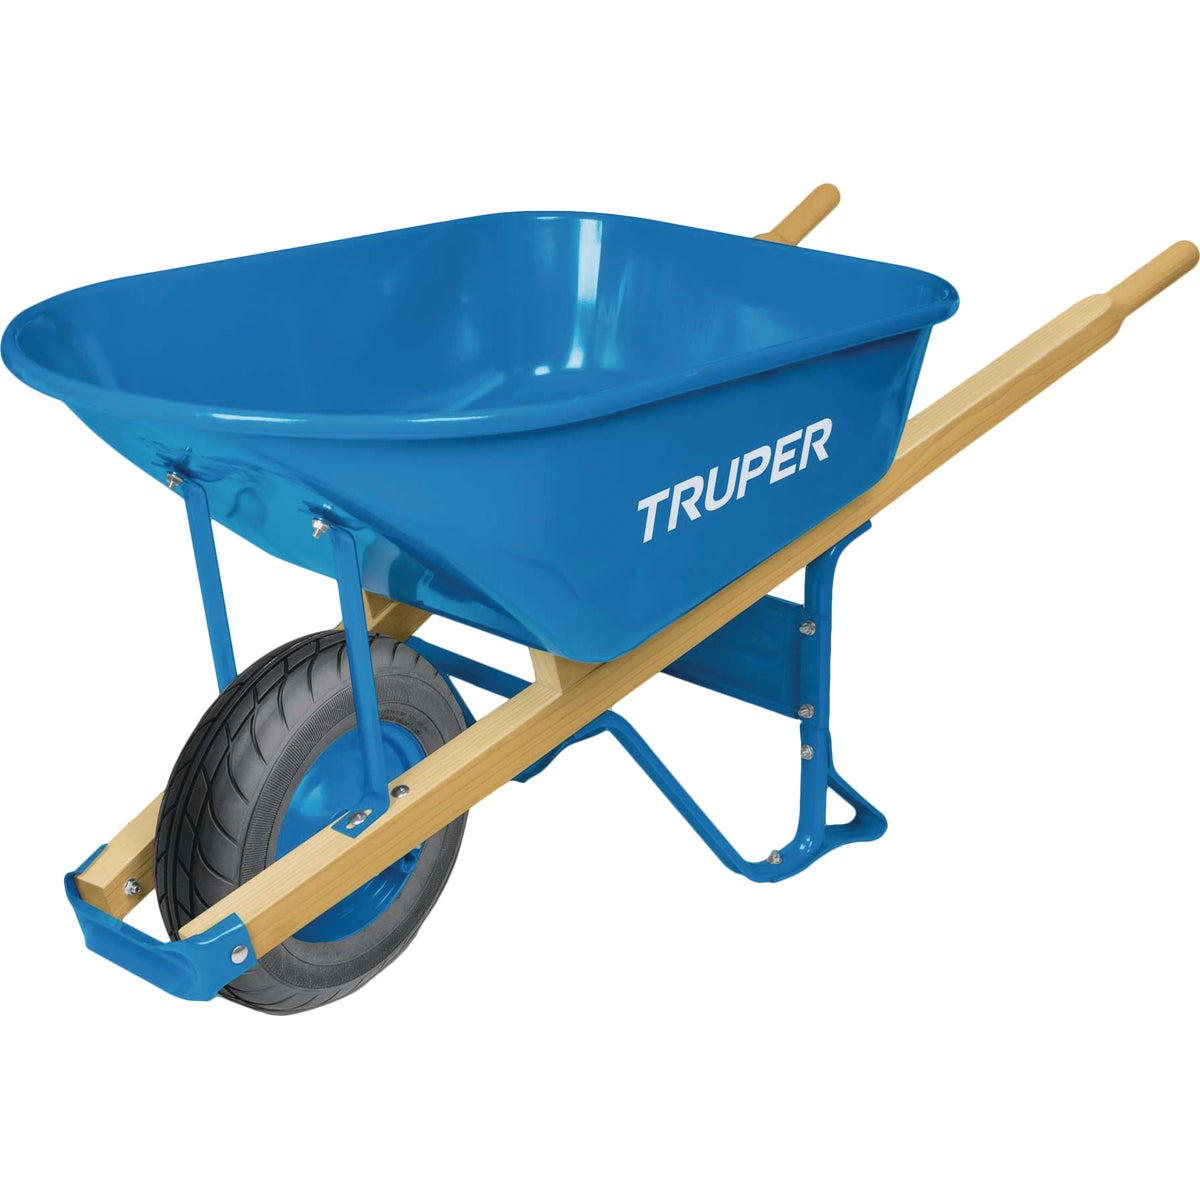 6CU FT STEEL WHEELBARROW - PS-6F by Truper Herramientas